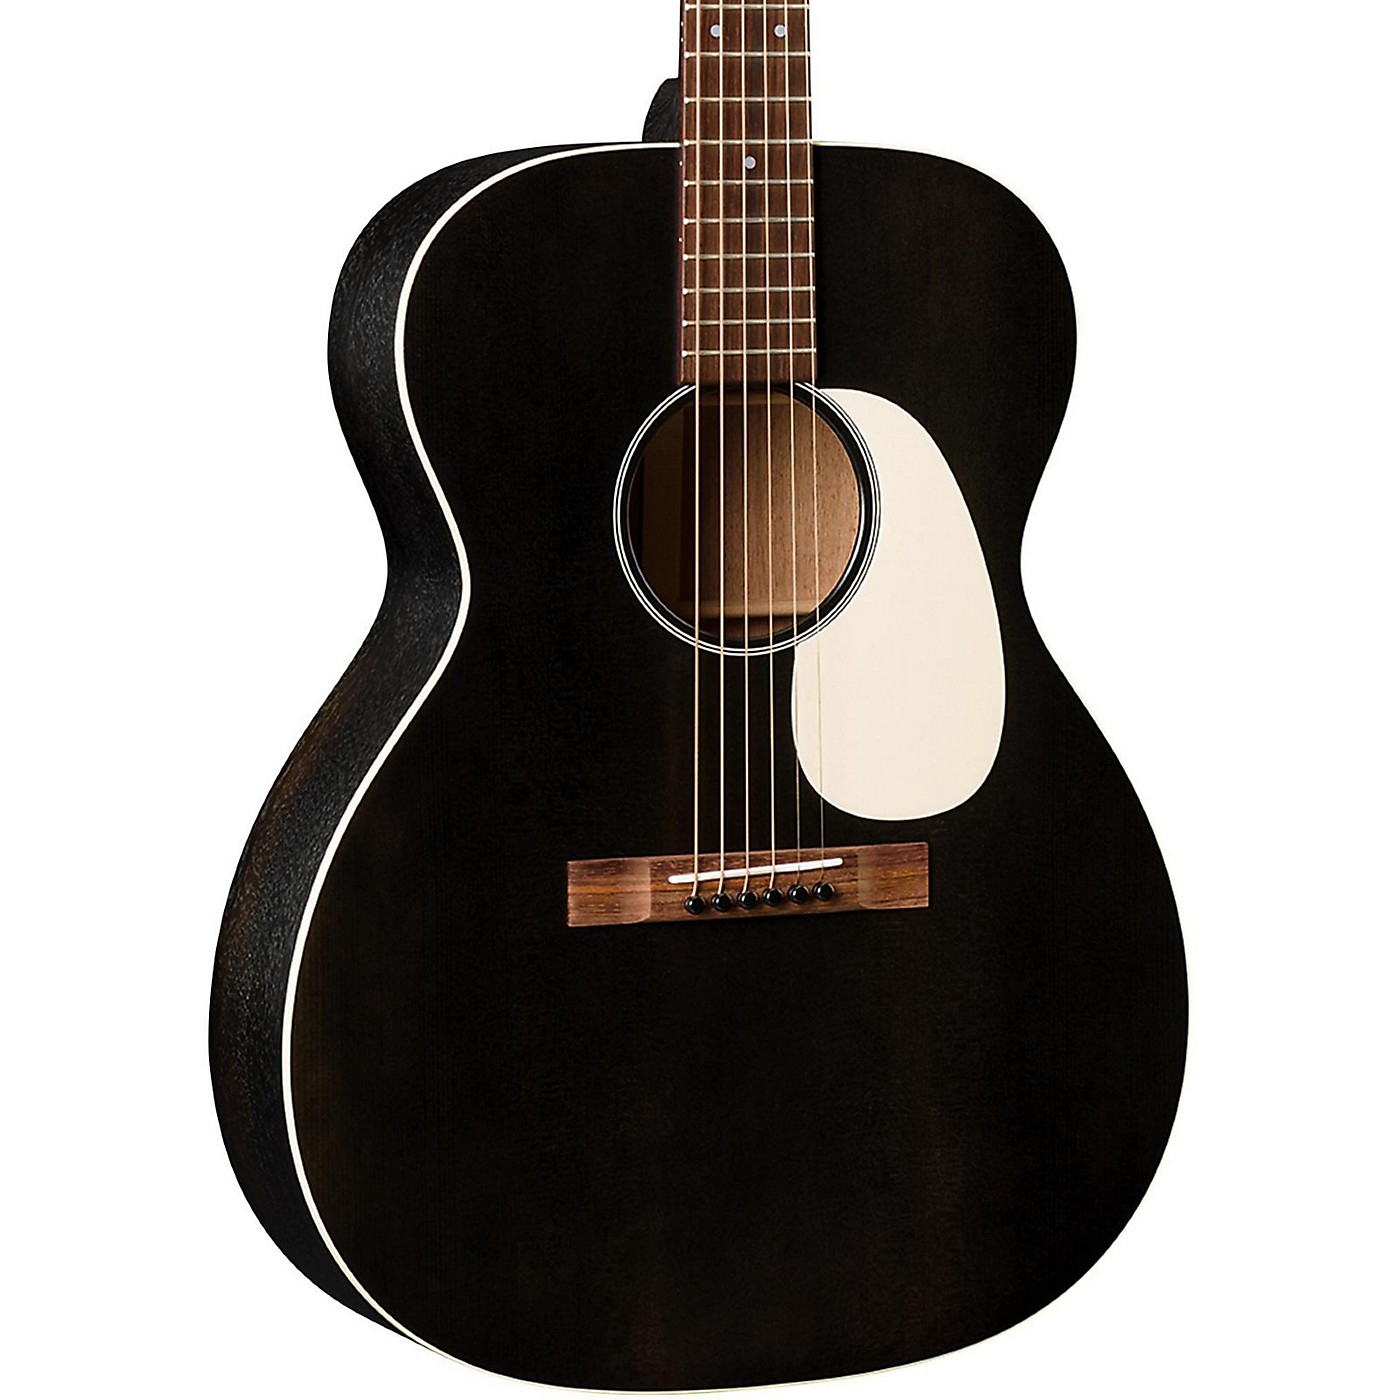 Martin 17 Series 000-17 Auditorium Acoustic Guitar thumbnail